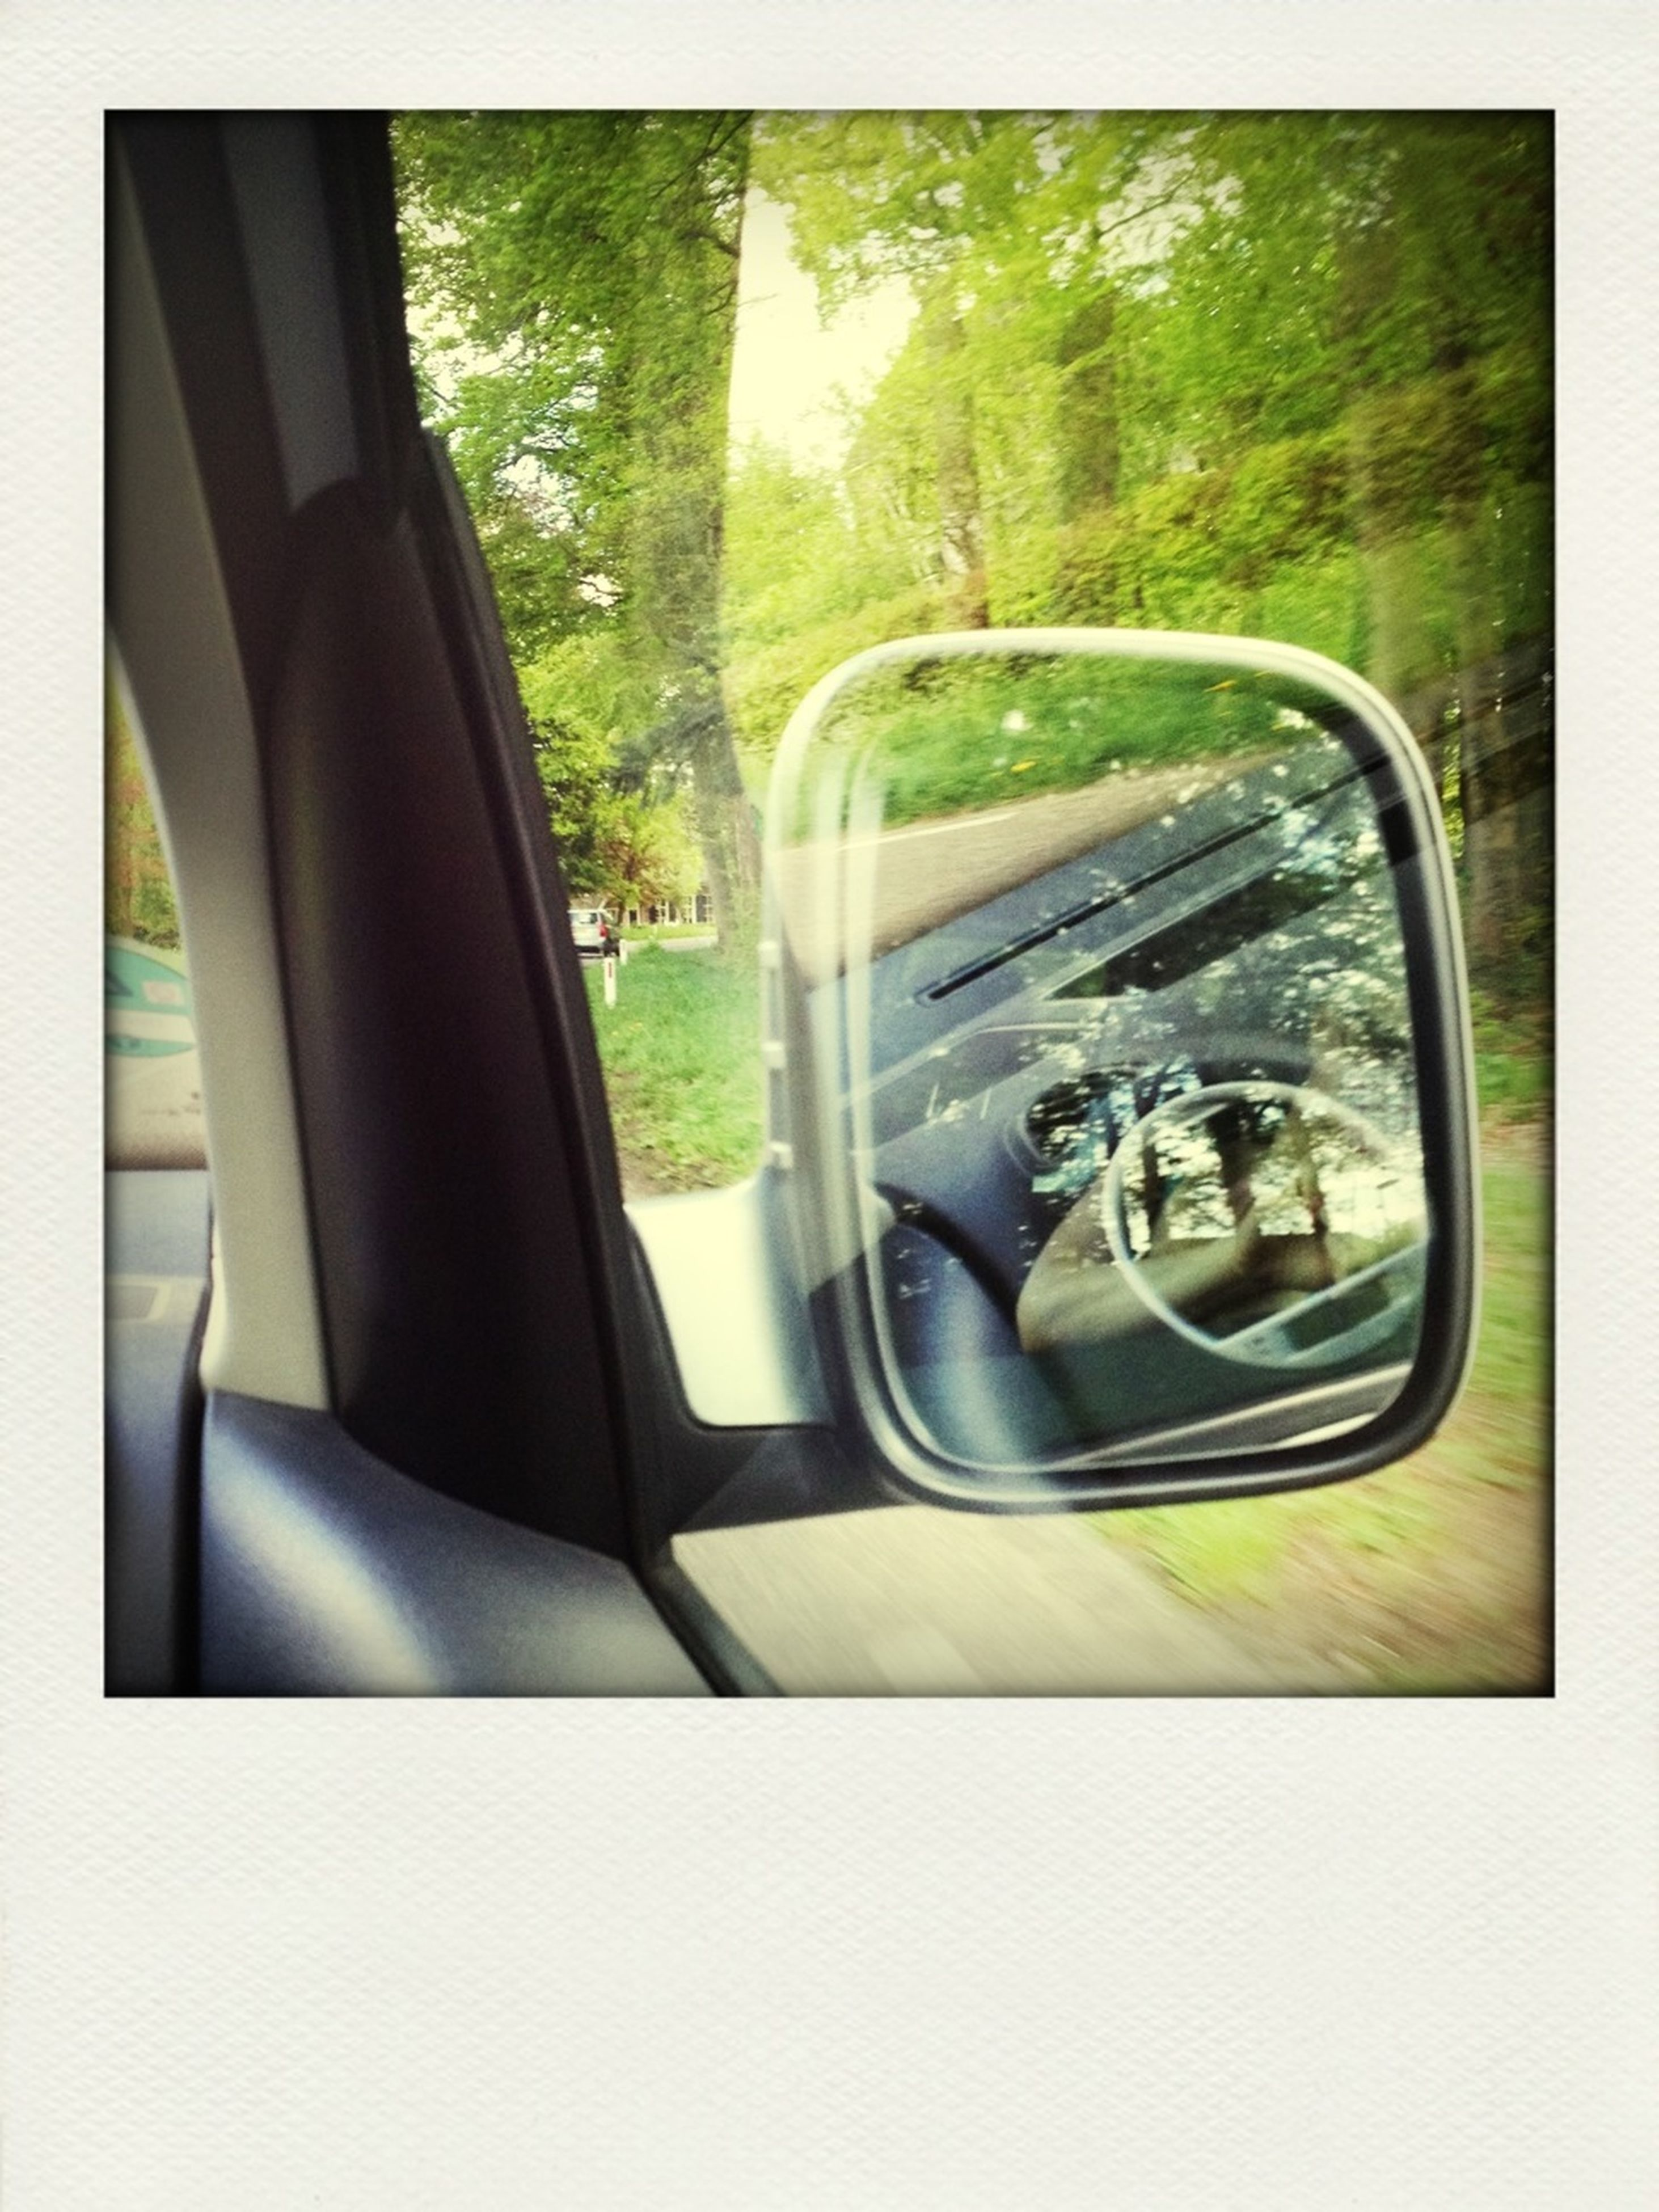 transportation, mode of transport, land vehicle, car, vehicle interior, travel, glass - material, tree, side-view mirror, reflection, transparent, car interior, on the move, windshield, window, journey, transfer print, part of, public transportation, road